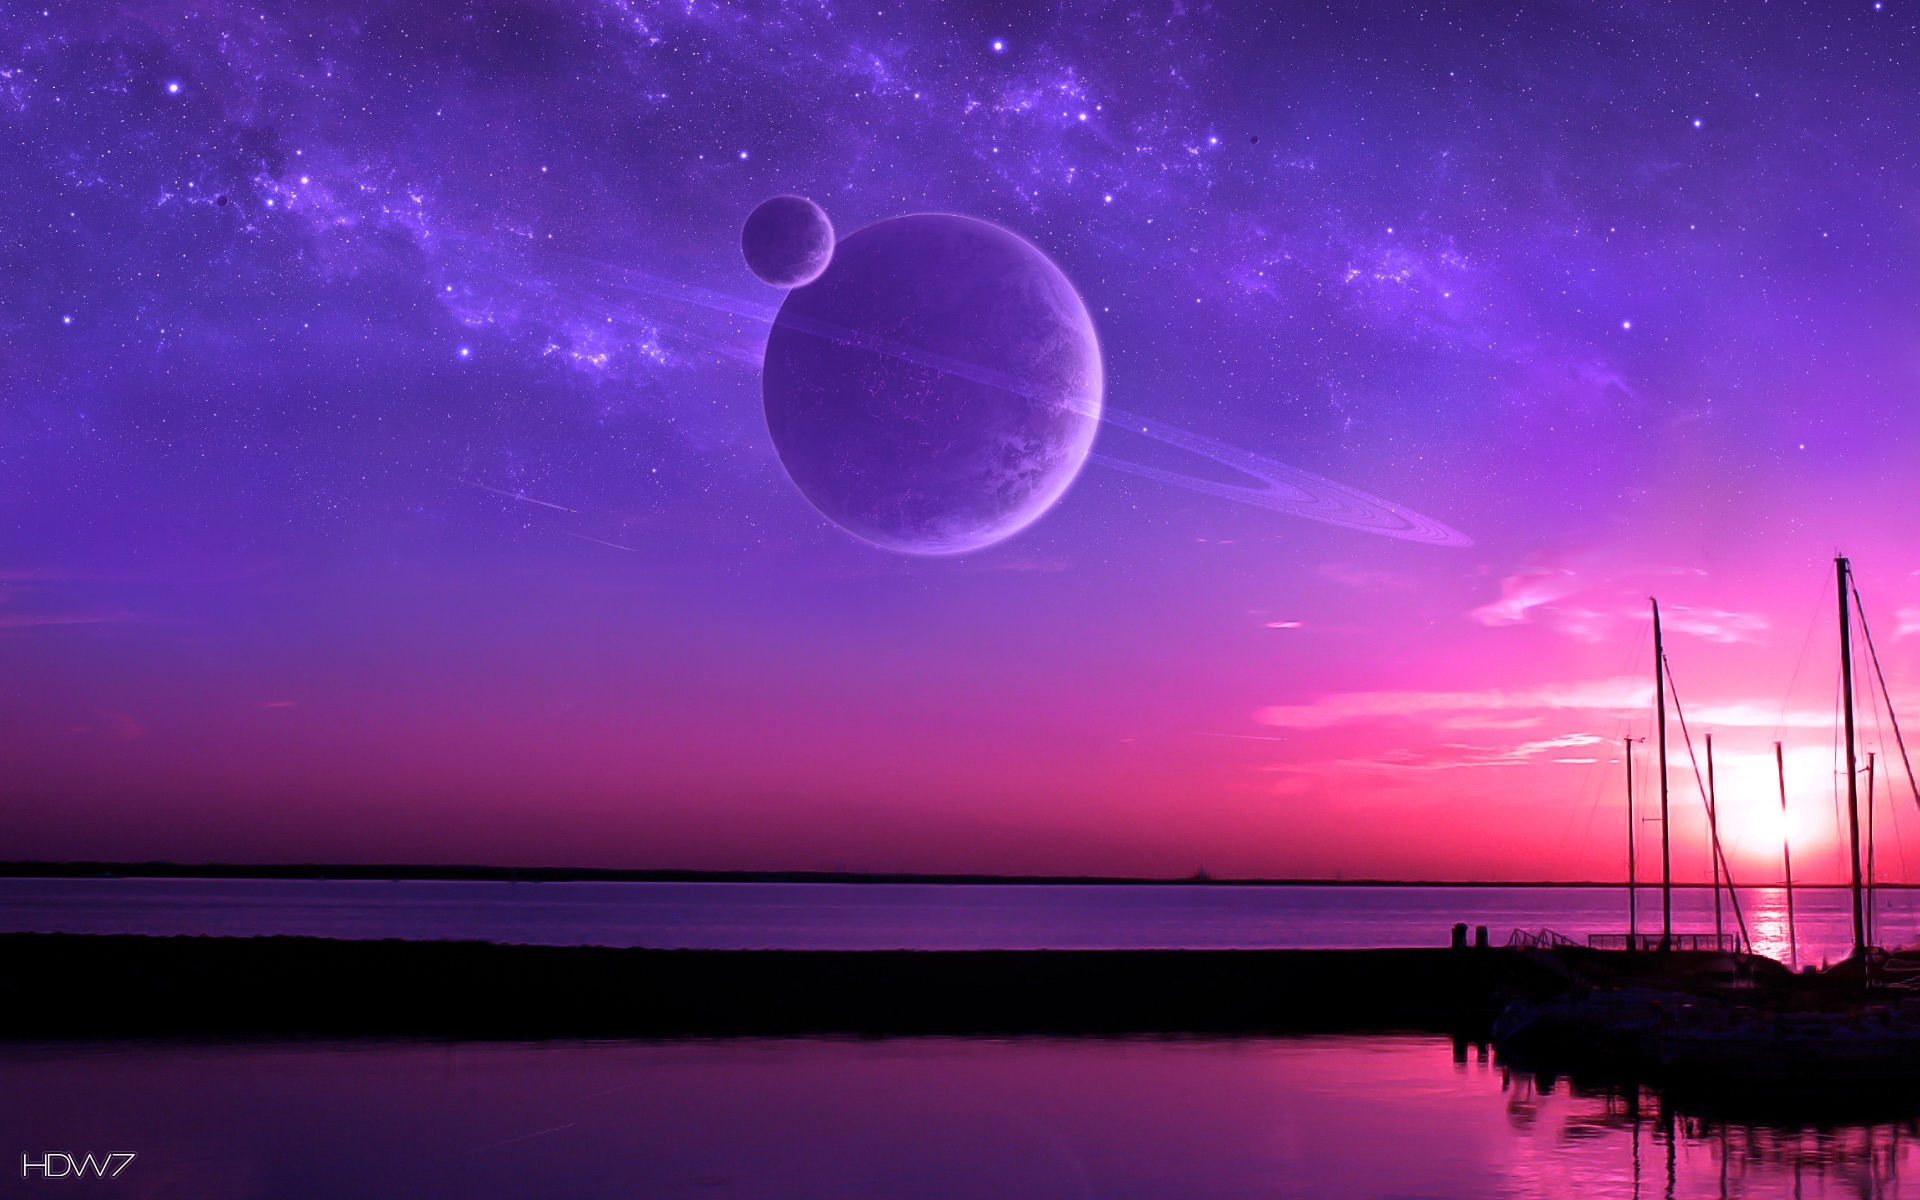 Purple And Pink Sunset Fantasy Space Planets